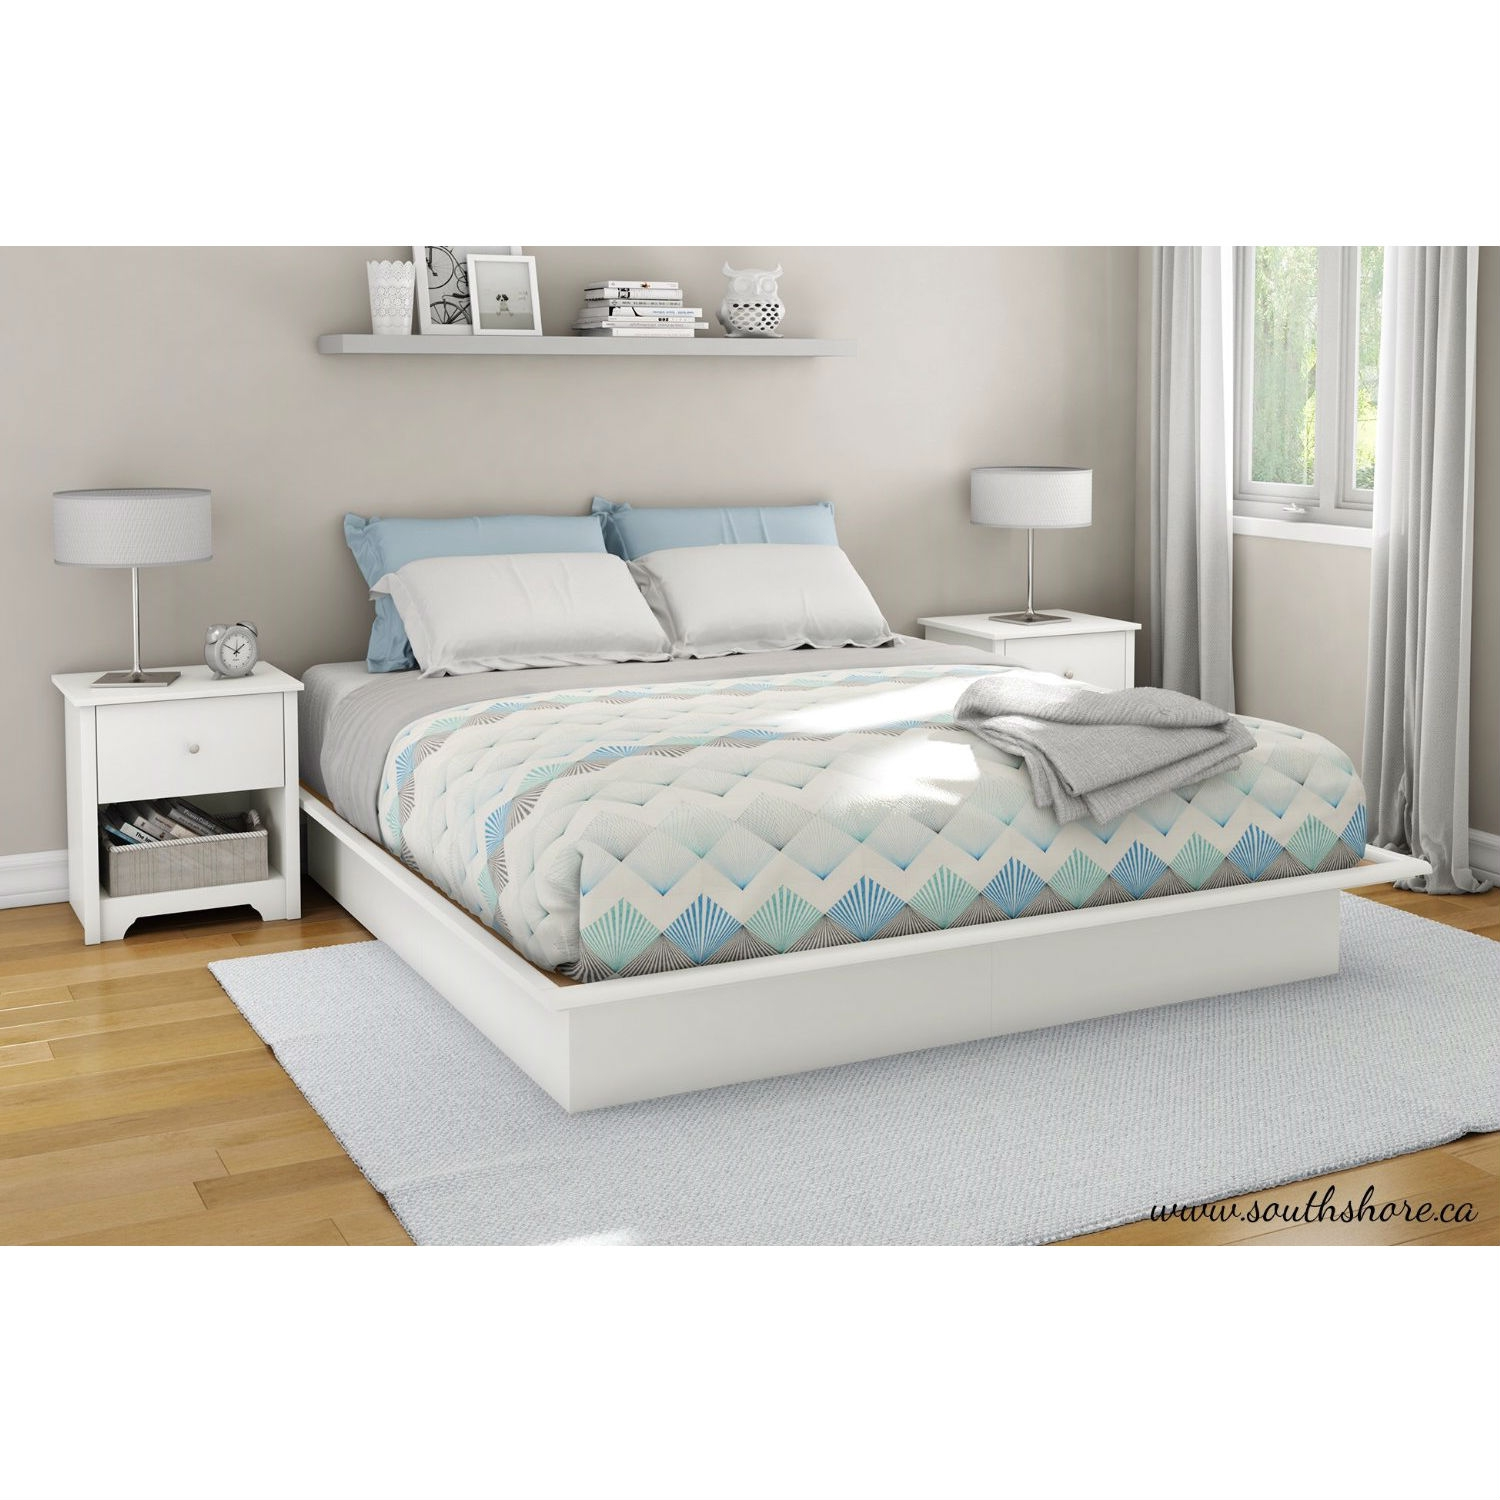 King size Contemporary Platform Bed Frame in White Finish ...